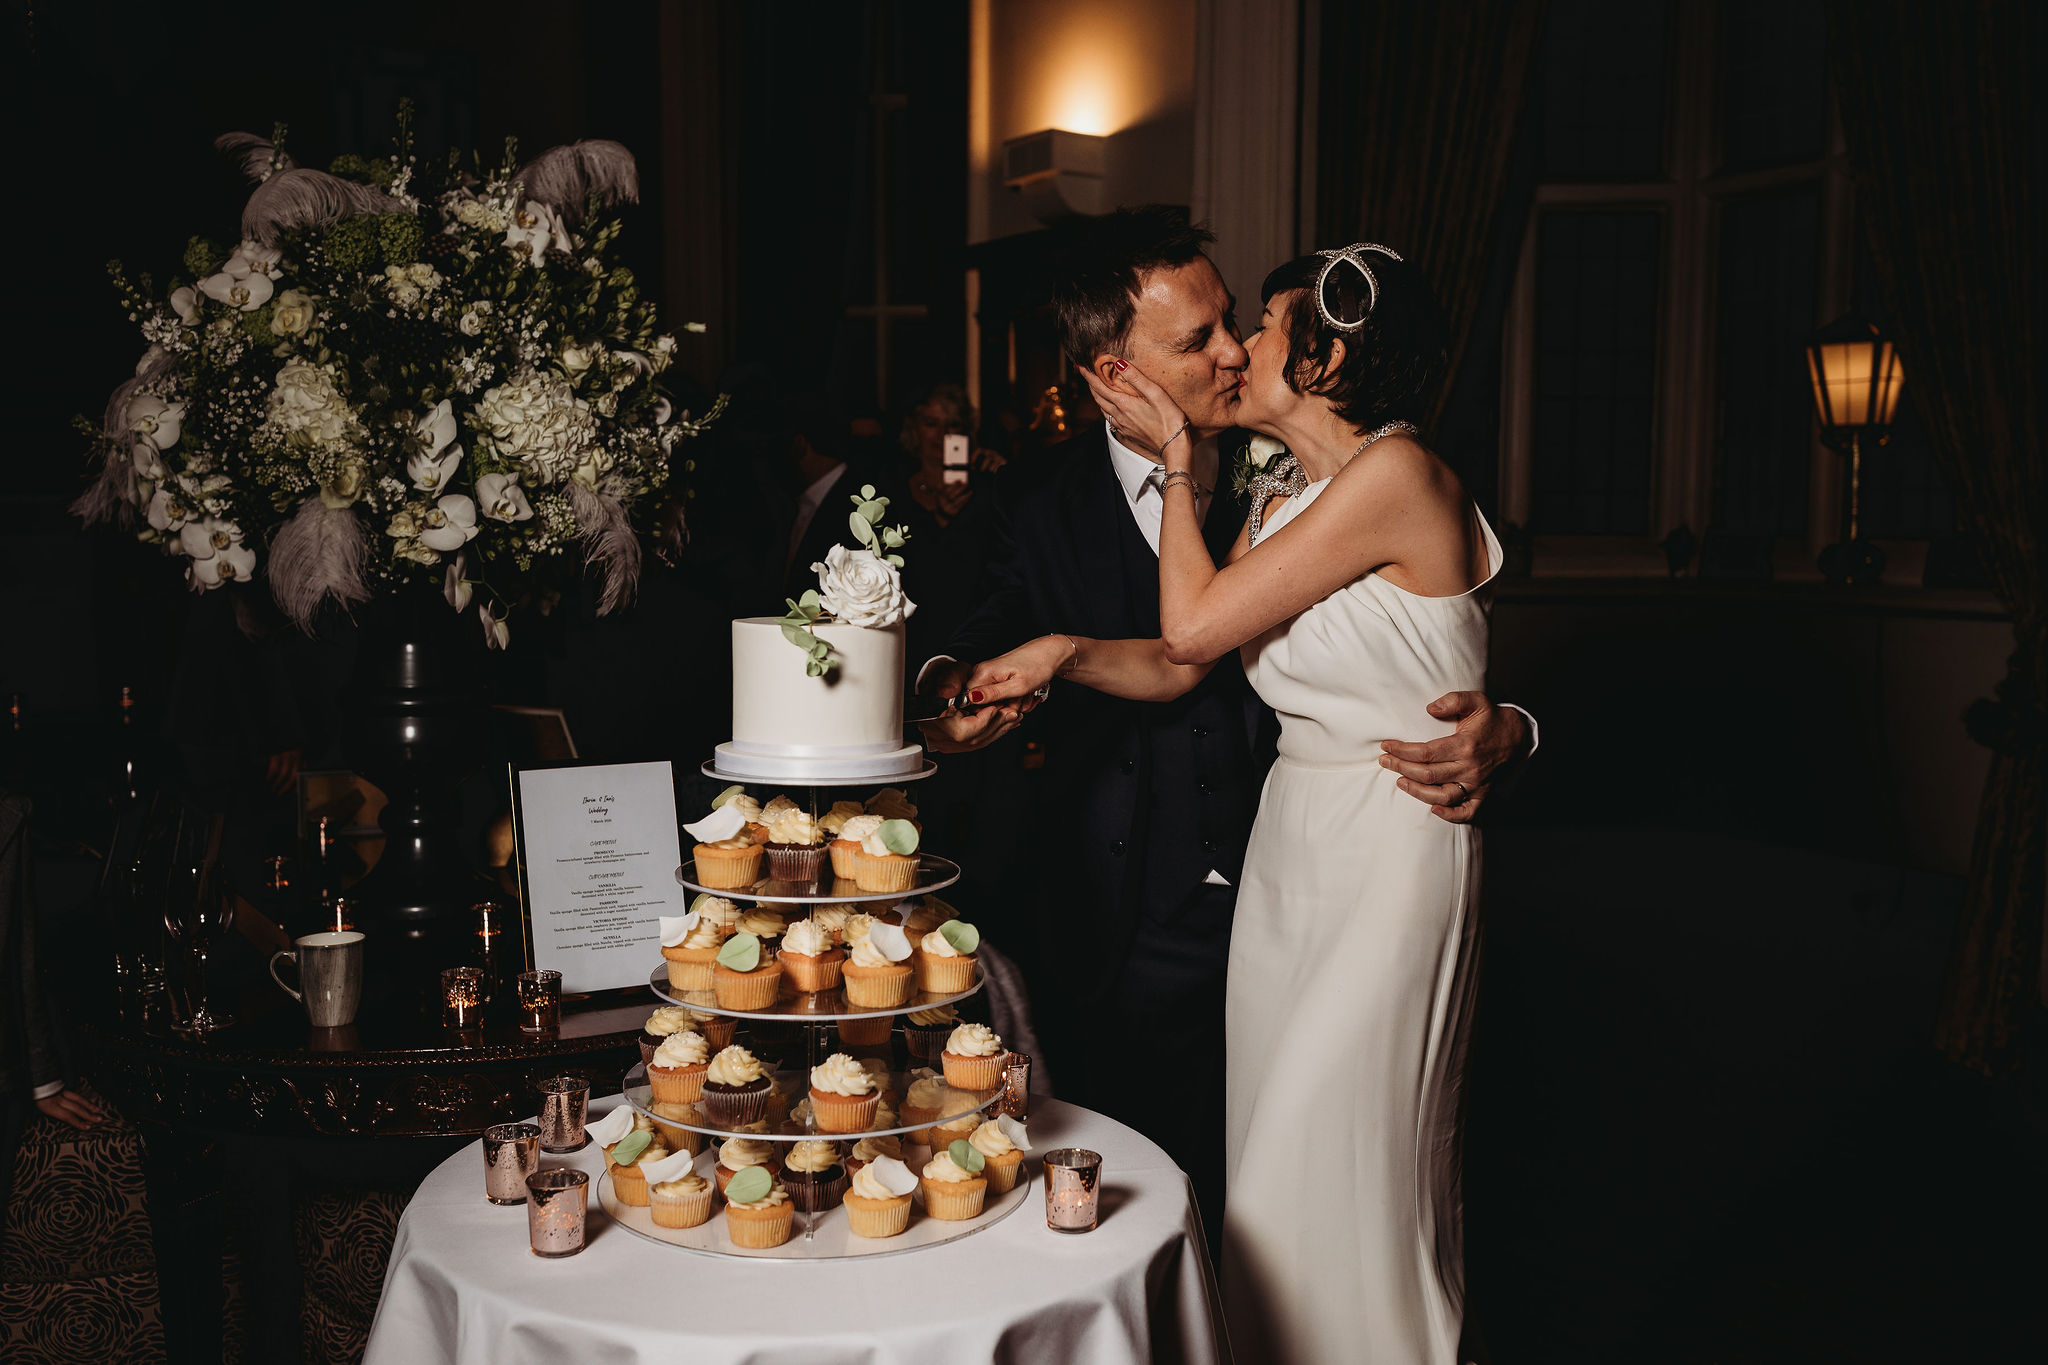 couple cutting top tier of cupcake tower luxury wedding cake decorated with a single sugar rose at Danesfield House. Photo by Thmye Lane Photography